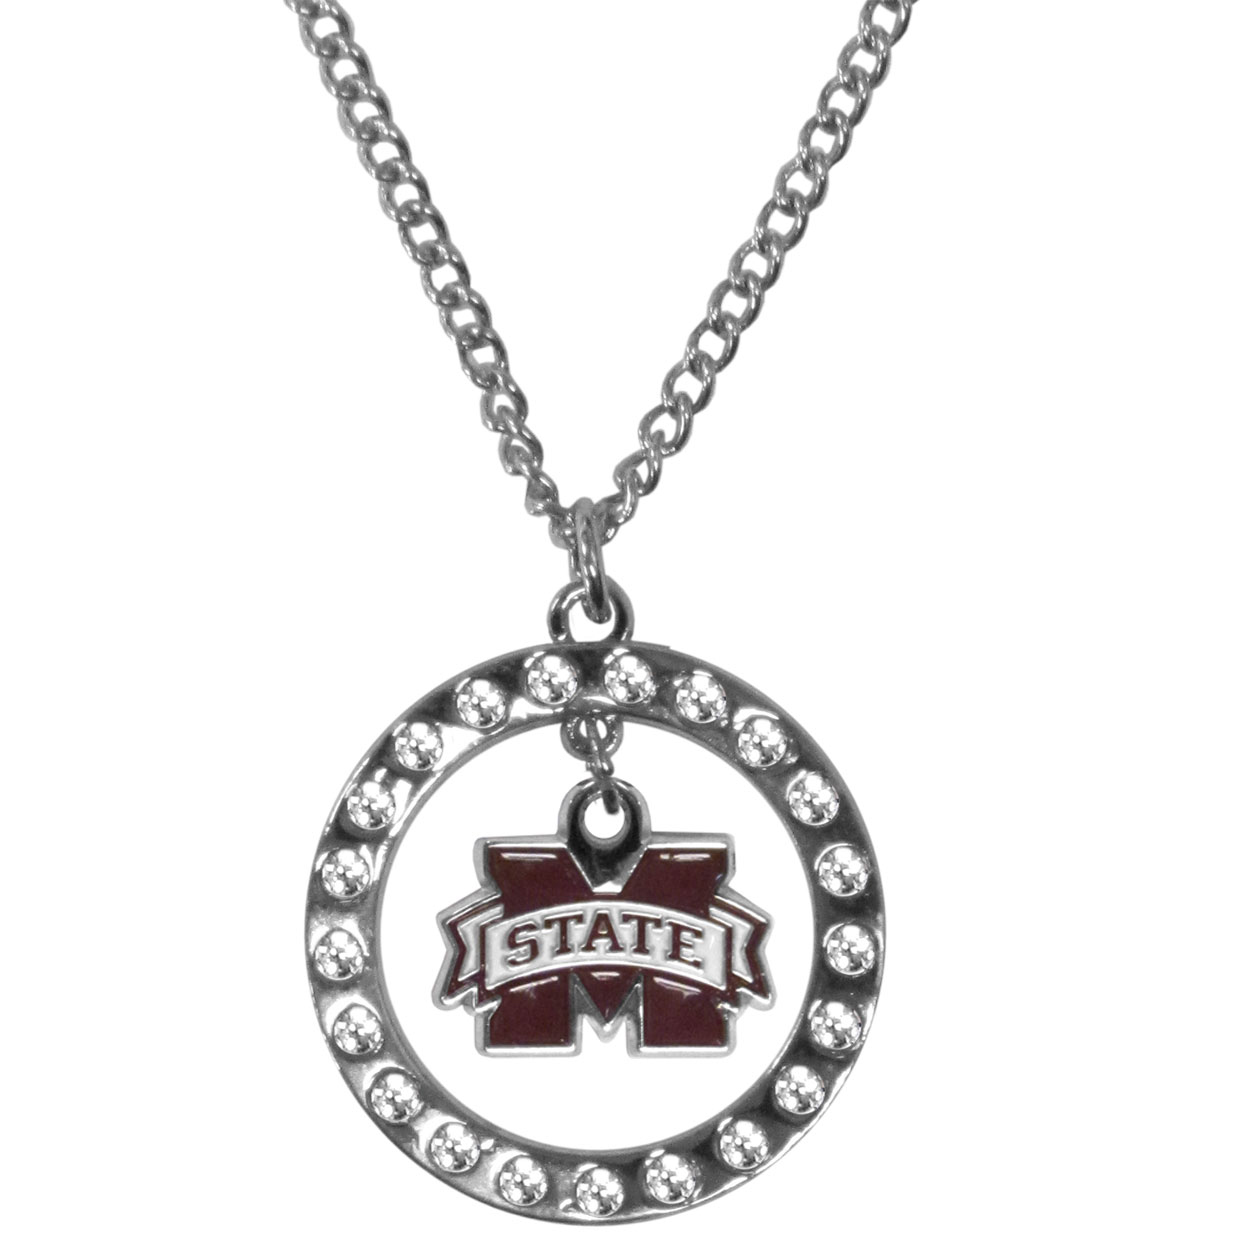 Mississippi St. Bulldogs Rhinestone Hoop Necklaces - Our Mississippi St. Bulldogs rhinestone hoop necklace comes on an 18 inch chain and features a hoop covered in rhinestones with a high polish chrome finish and a cast and enameled team charm dangling in the center.